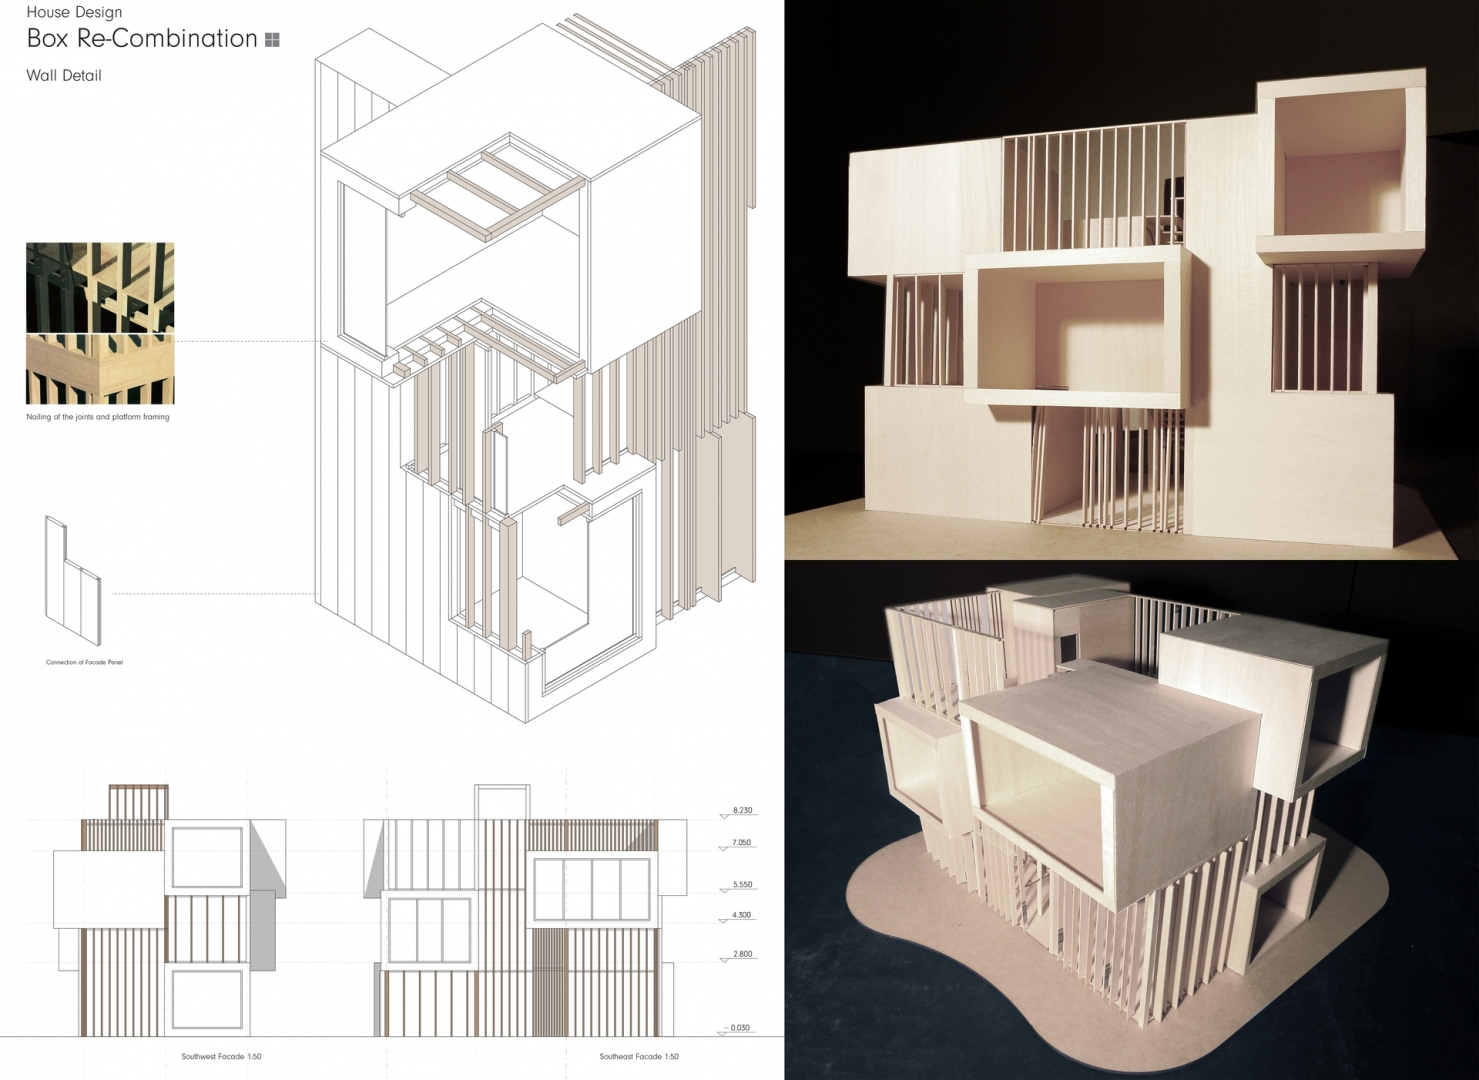 Enlarge Photo: Ideas for the Village: Rethinking Village House typologies in Hong Kong 9